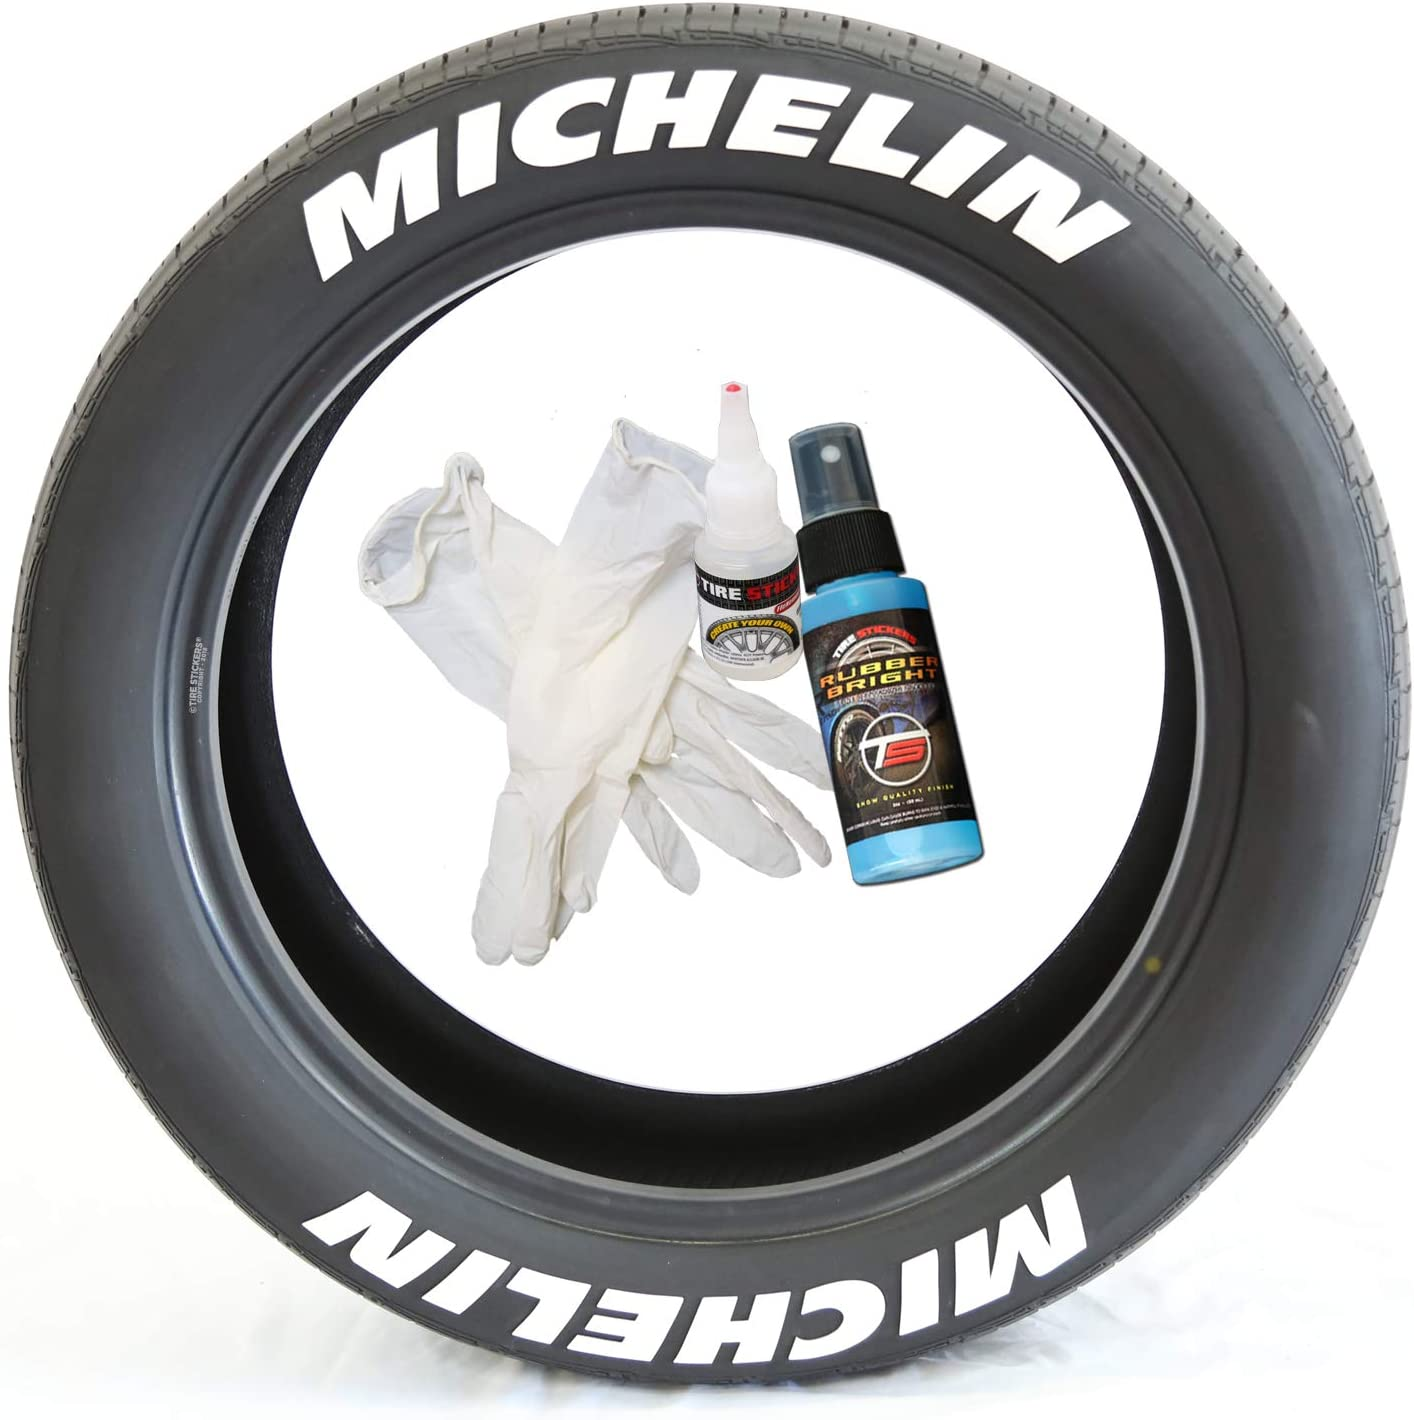 Tire Stickers Michelin Tire Lettering - Permanent Decals with Glue & 2oz Bottle Touch-Up Cleaner / 17-18 Inch Wheels / 1.25 Inches/White / 8 Pack